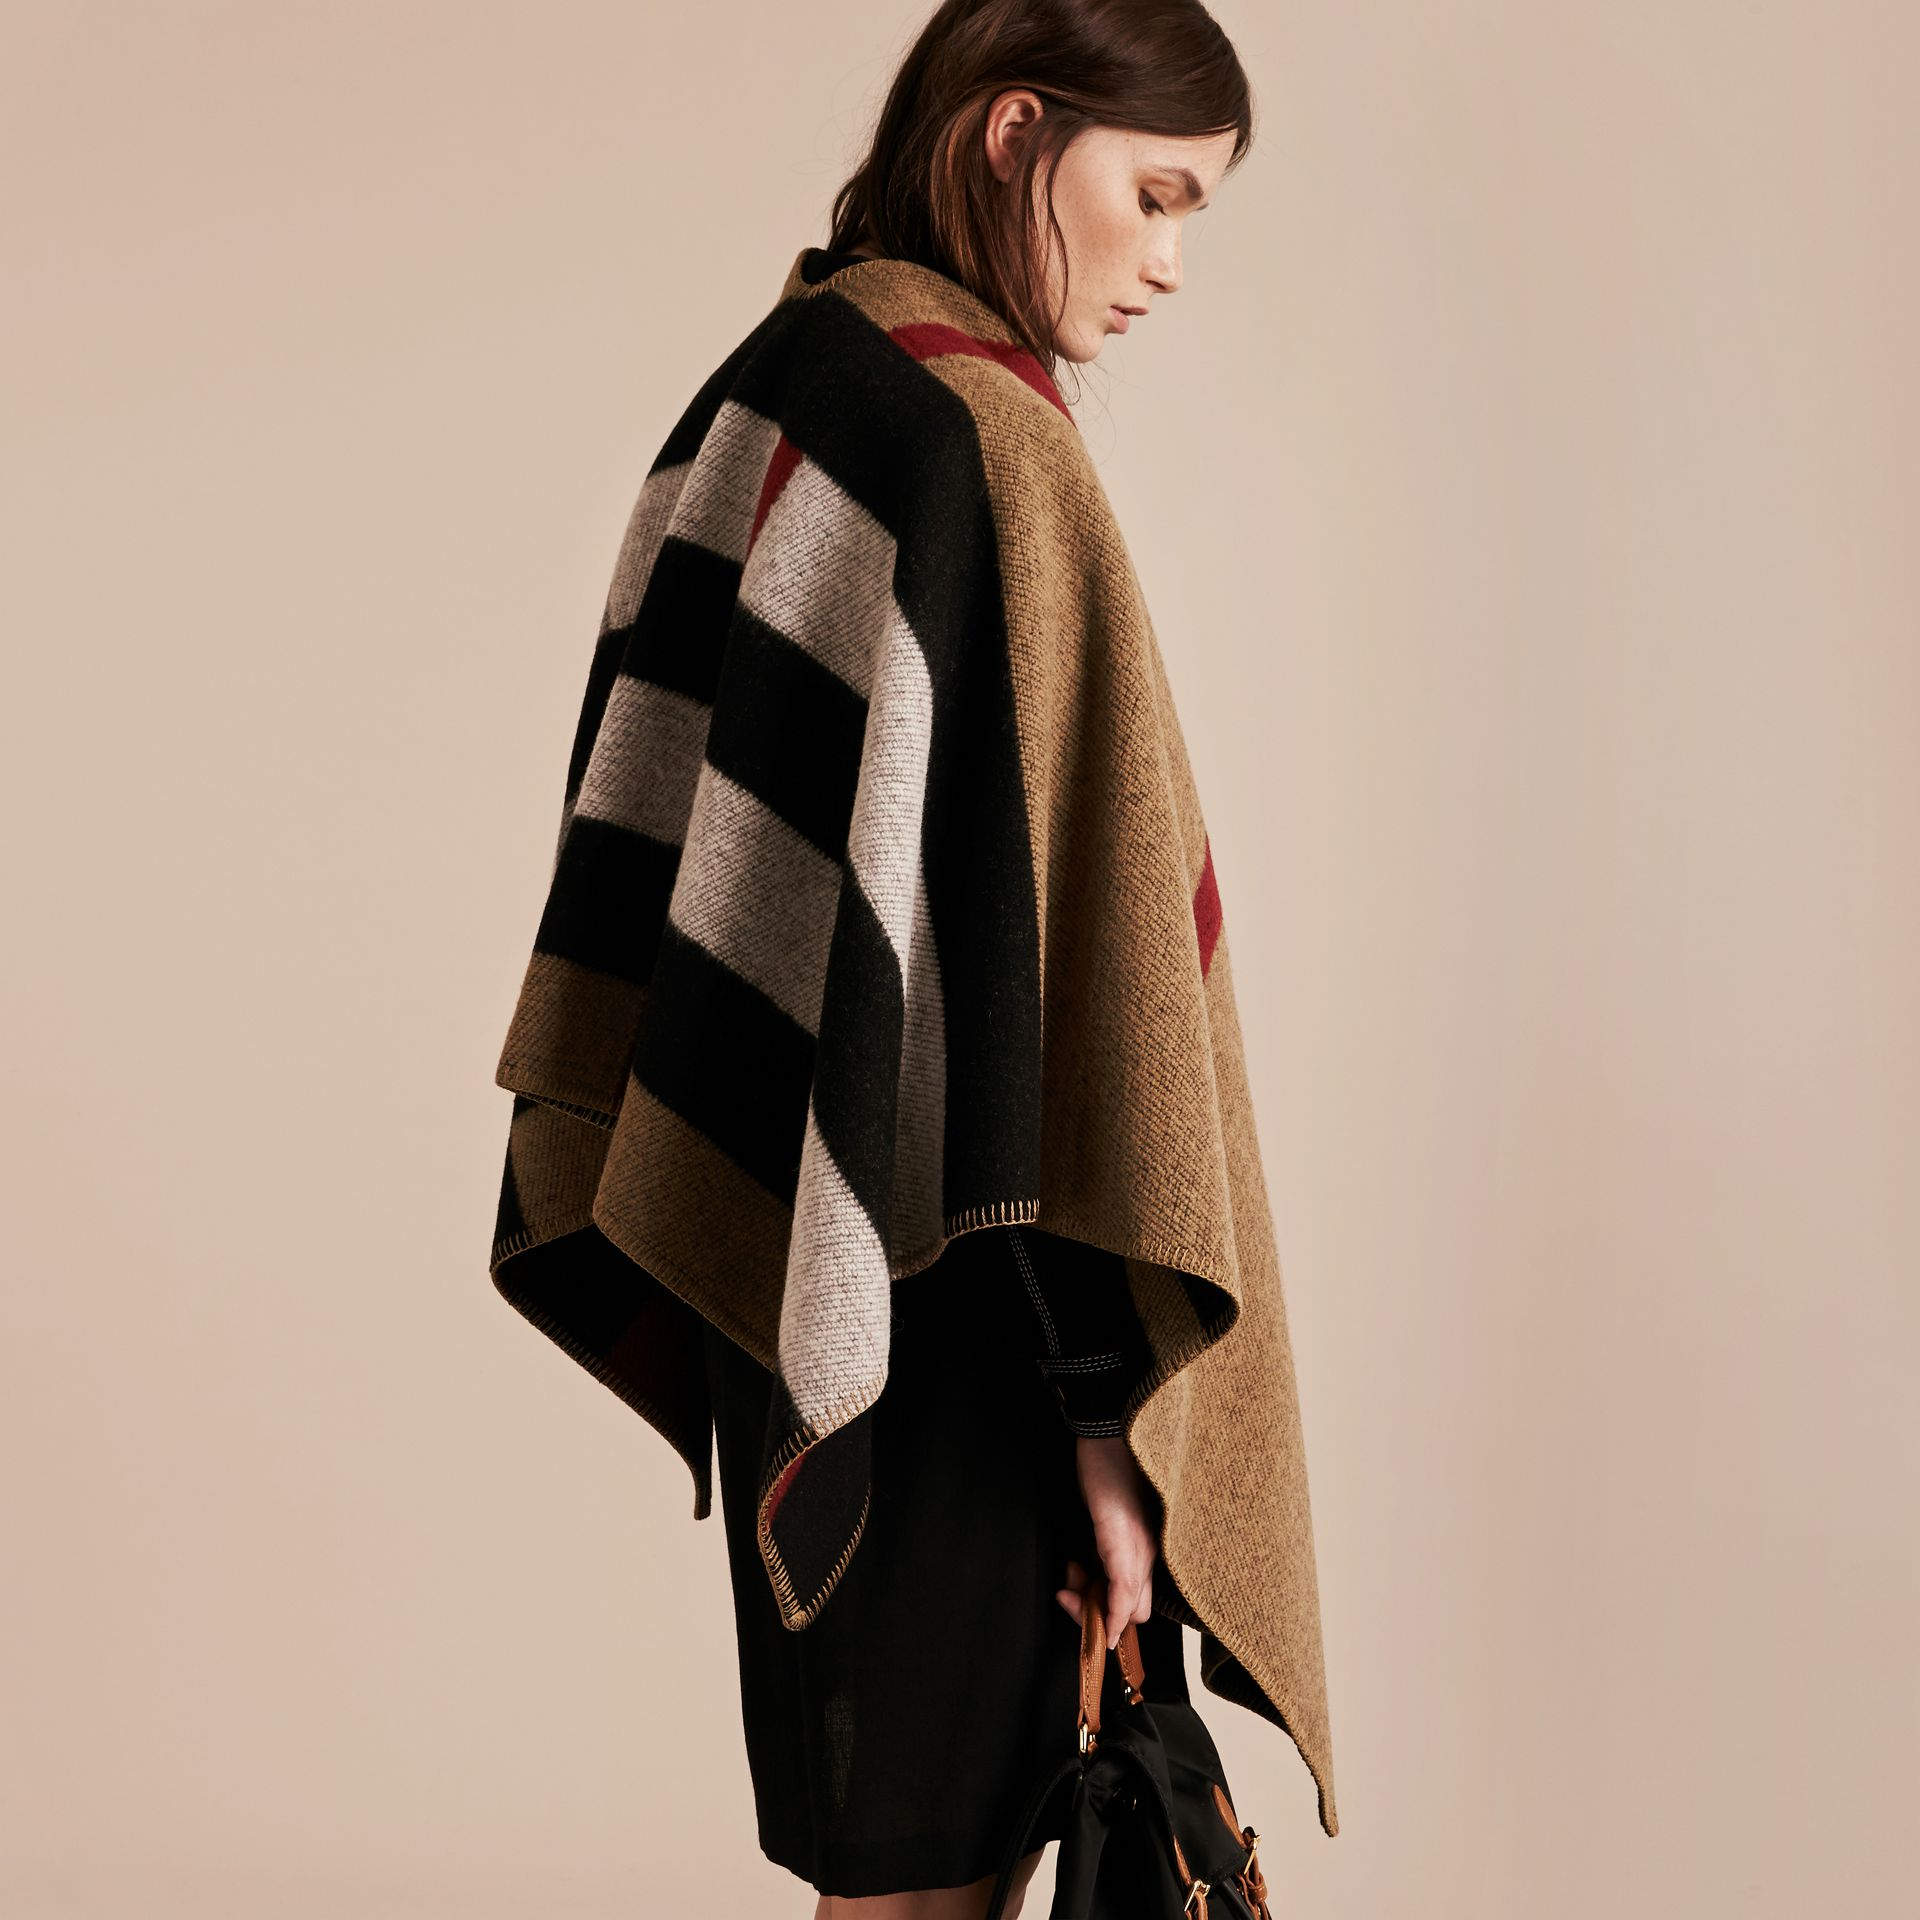 House check/black Check Wool and Cashmere Blanket Poncho - gallery image 3